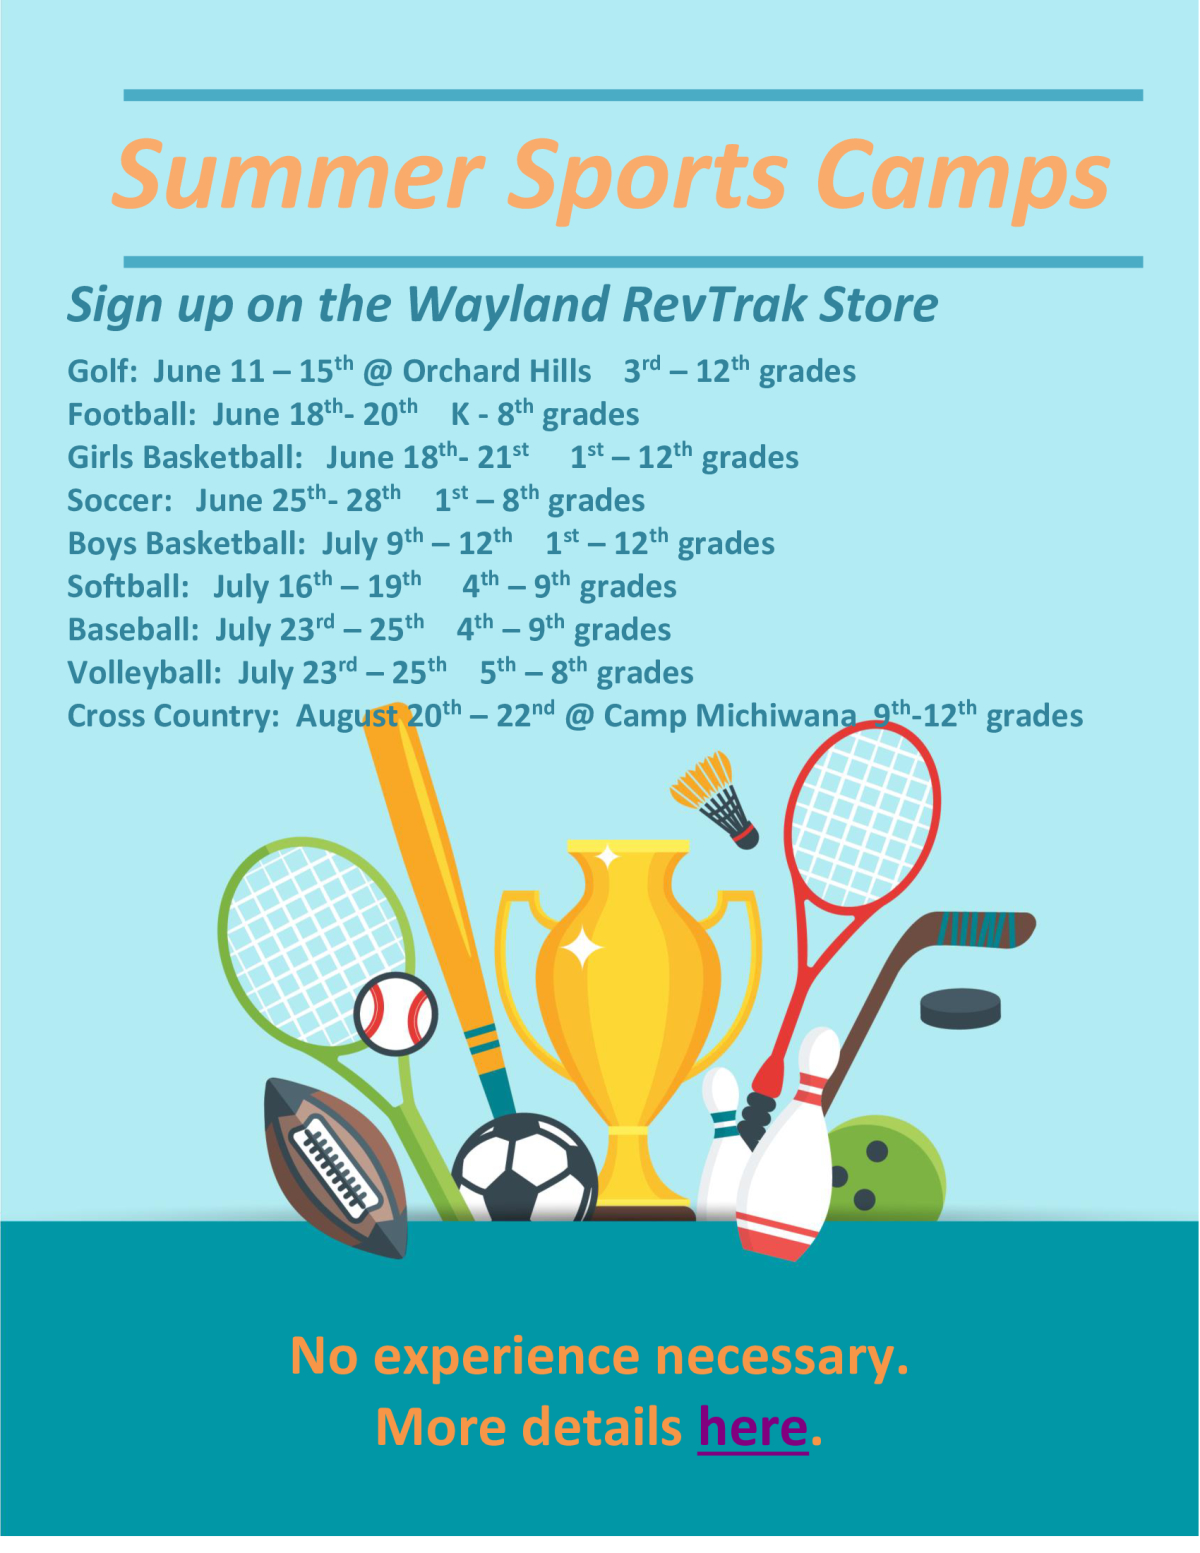 Summer Sports Camps 2018